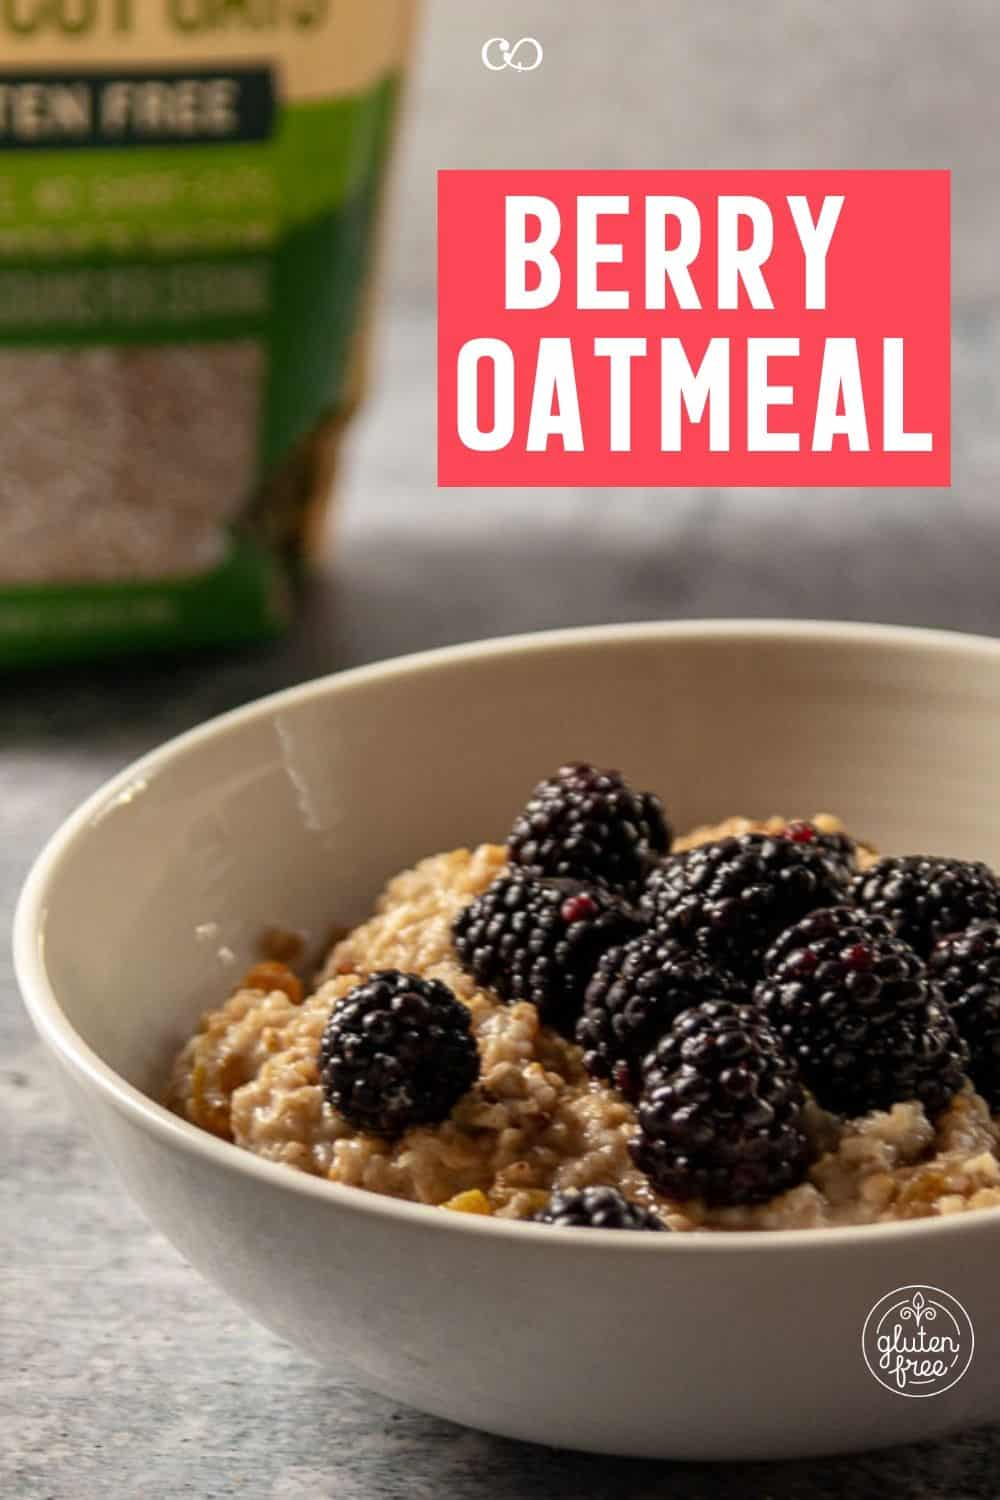 A bowl of berry oatmeal with blackberries, crushed pecans, and maple syrup and a bag of steel cut oats